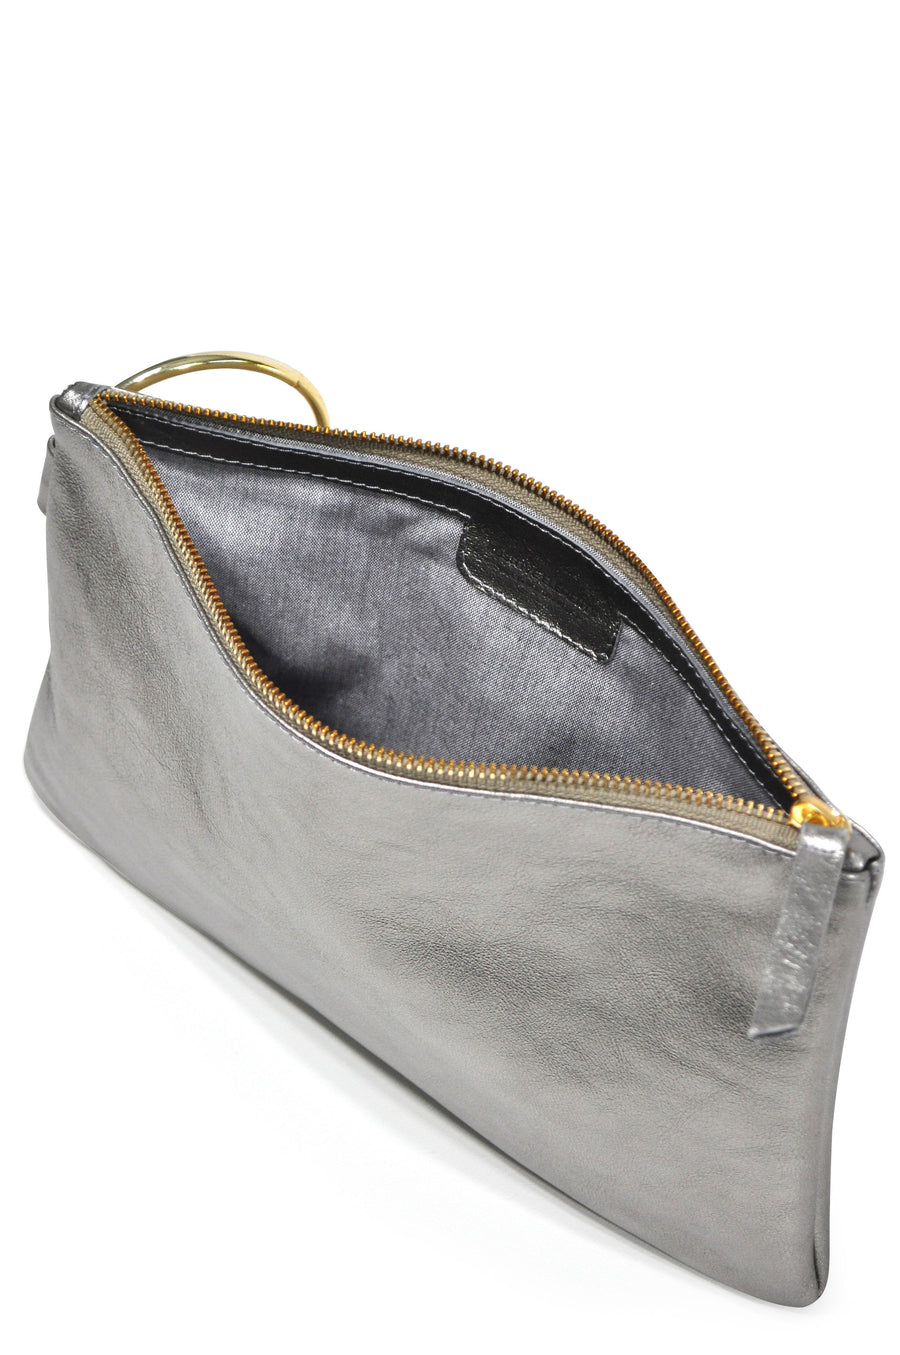 Gavi Leather Clutch - Pewter - Positive Elements